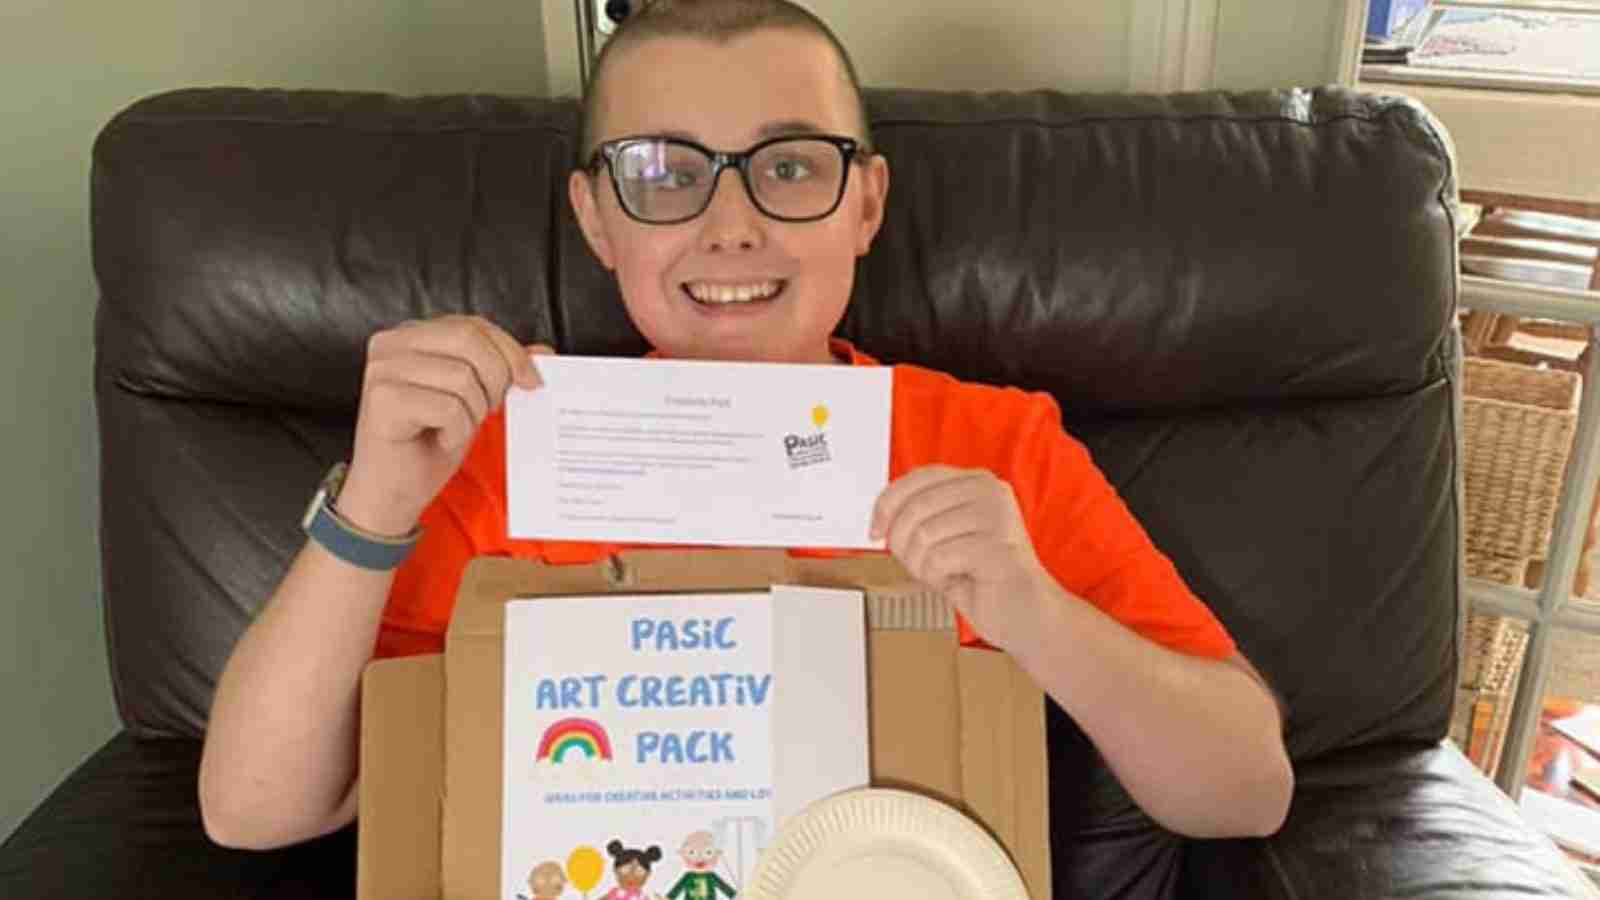 Matty smiling with his creativity pack